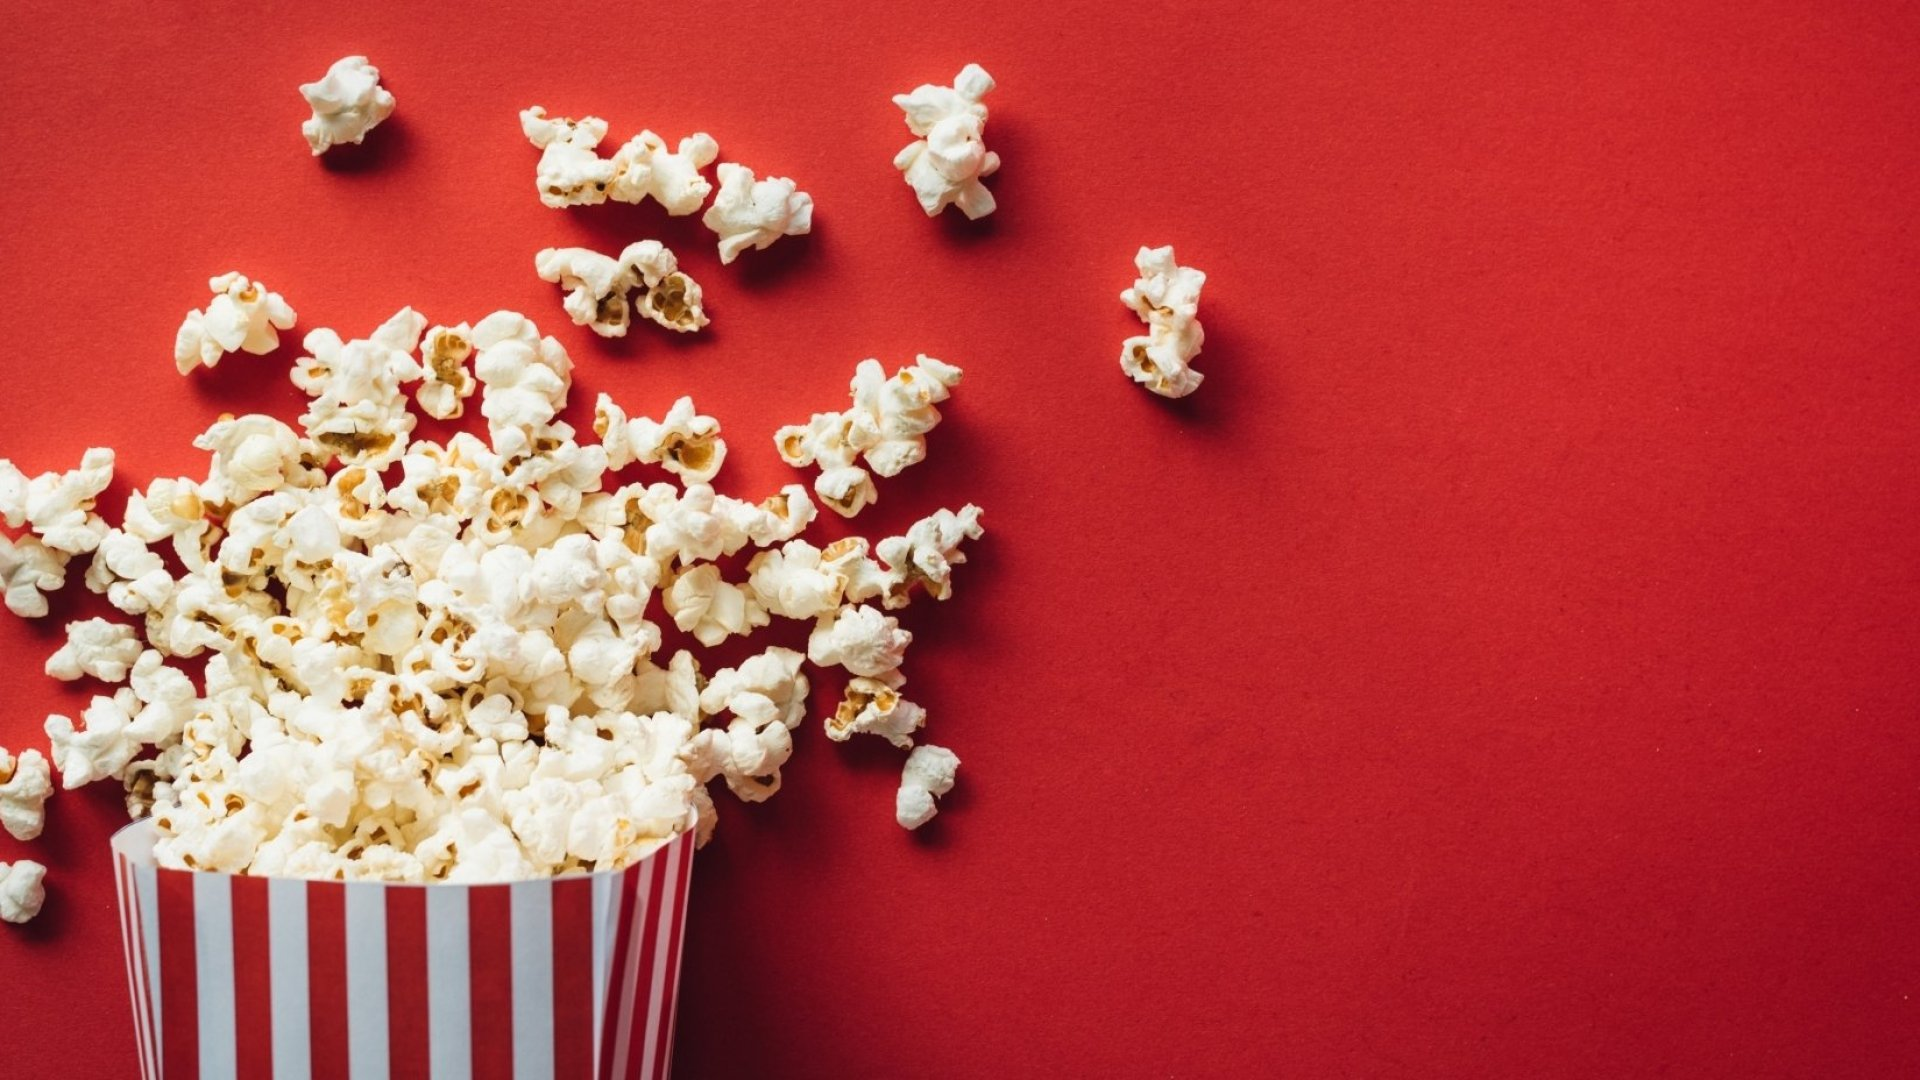 MoviePass Literally Ran Out of Money. Here Are 4 Lessons for Every Small Business From the Debacle